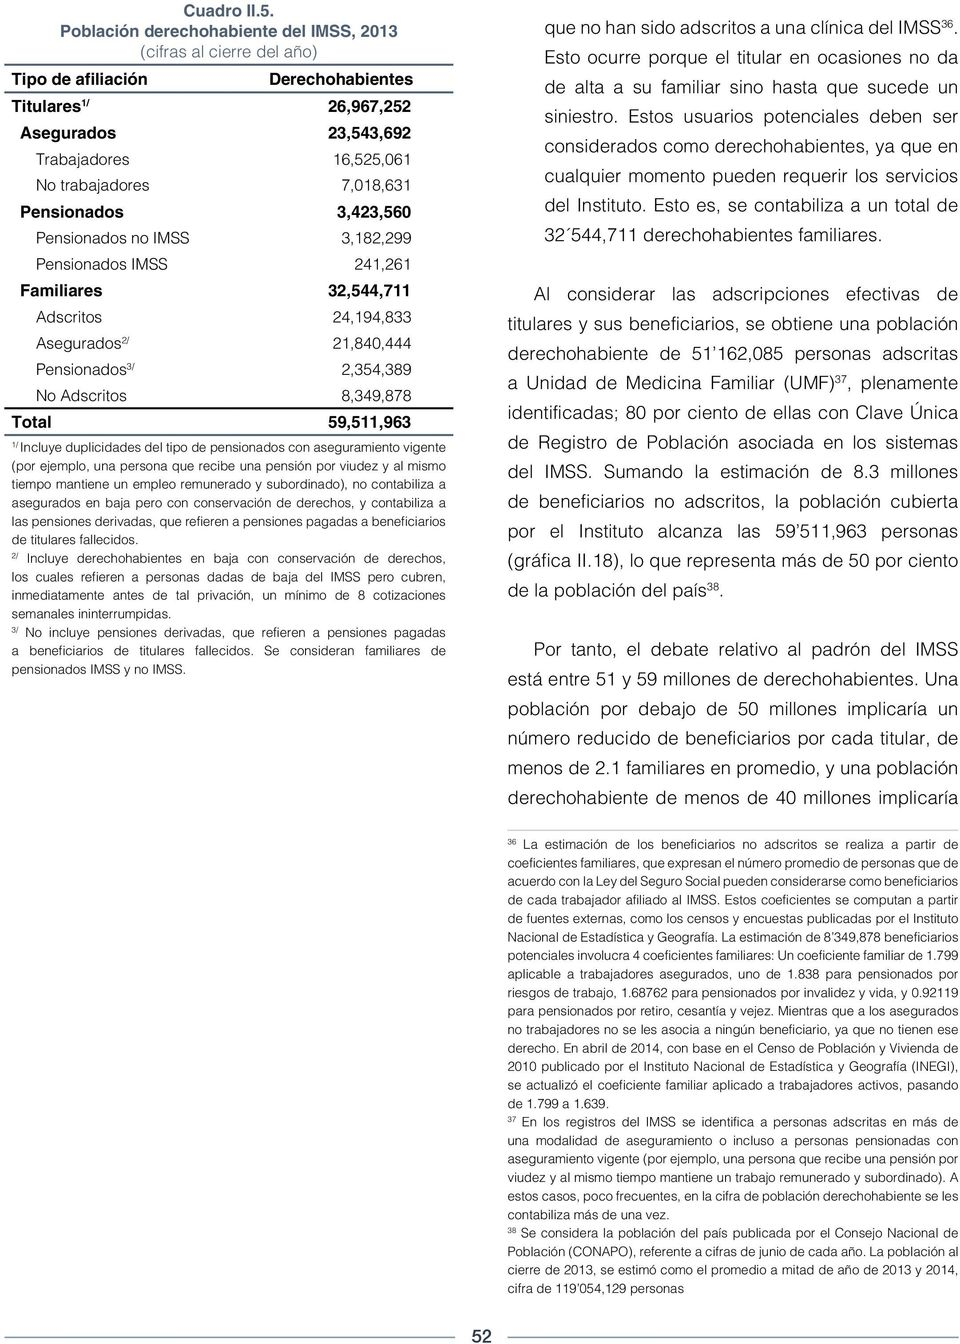 Pensionados 3,423,560 Pensionados no IMSS 3,182,299 Pensionados IMSS 241,261 Familiares 32,544,711 Adscritos 24,194,833 Asegurados 2/ 21,840,444 Pensionados 3/ 2,354,389 No Adscritos 8,349,878 Total